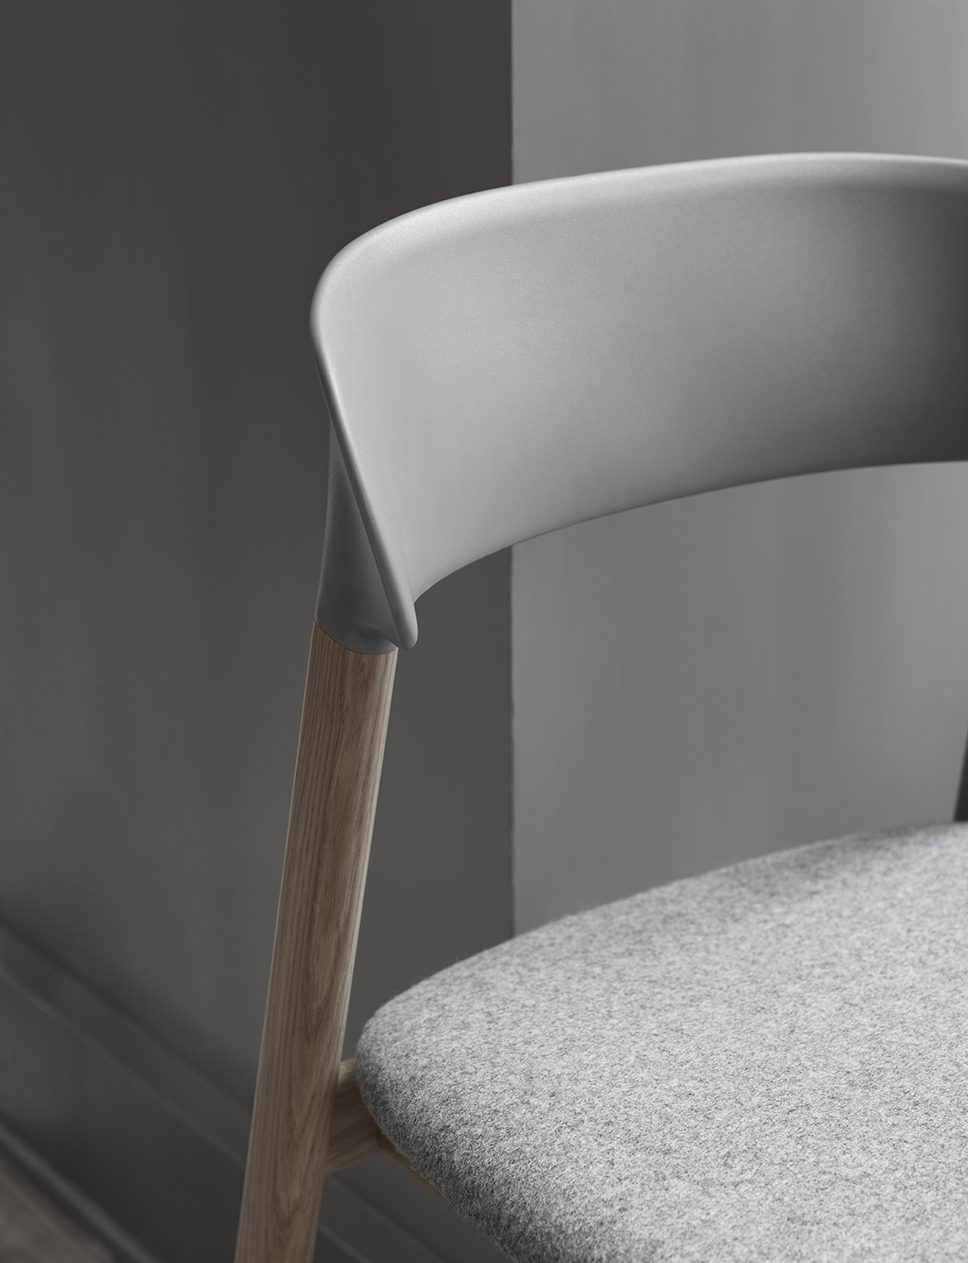 Herit Which Is Short For Heritage Reflects Simon Legalds Love Of Classic Danish Furniture Craftsmanship But Also Unites Seamlessly With The Designers